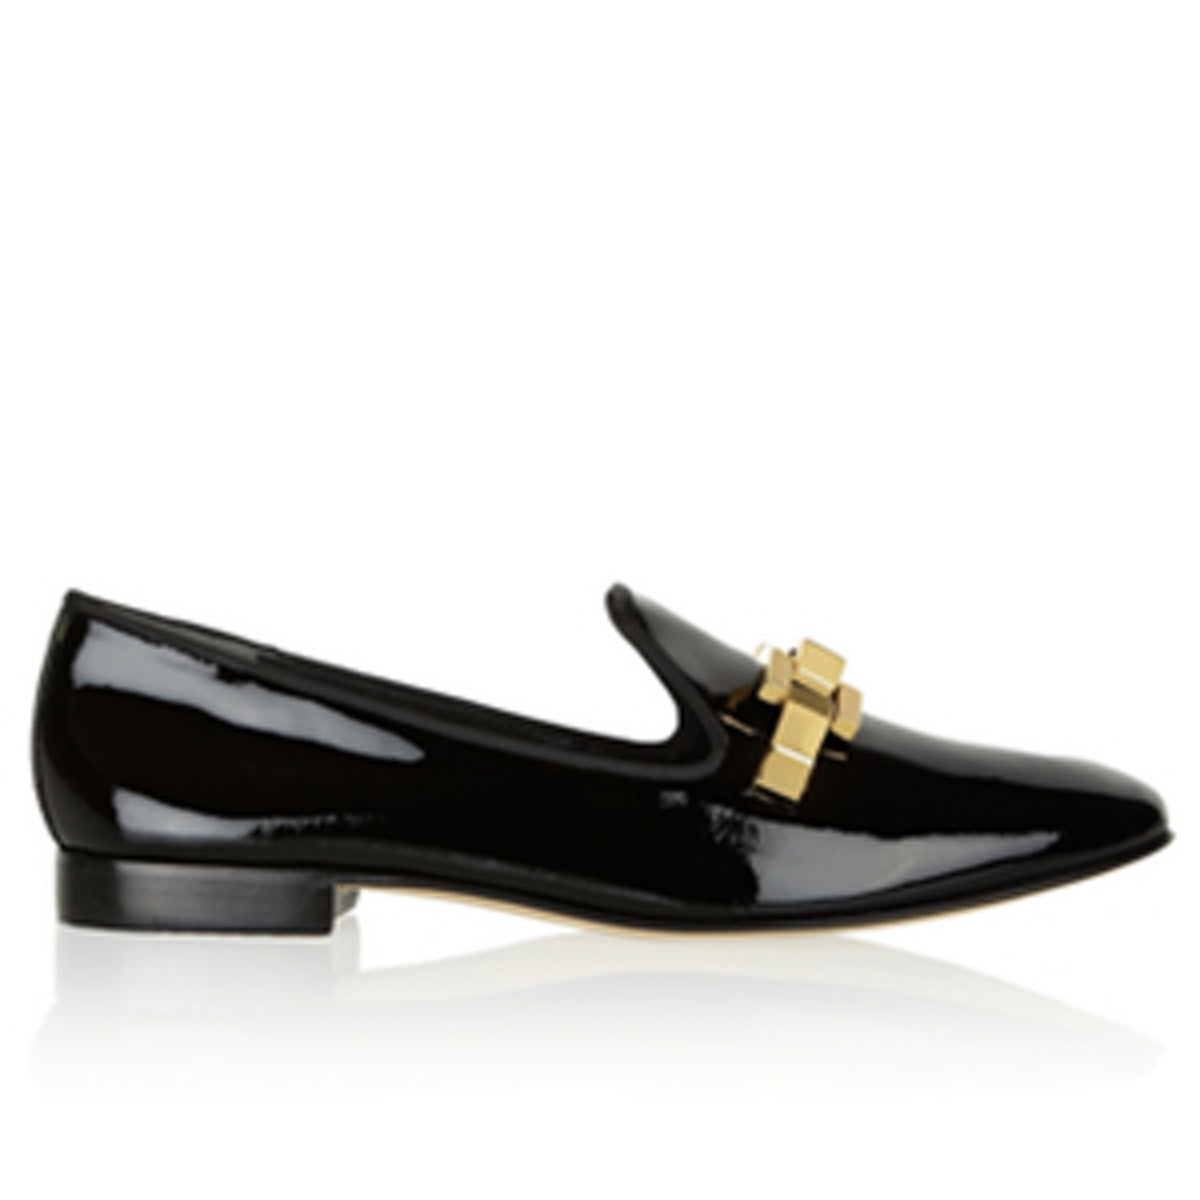 Isaac Patent-Leather Slippers